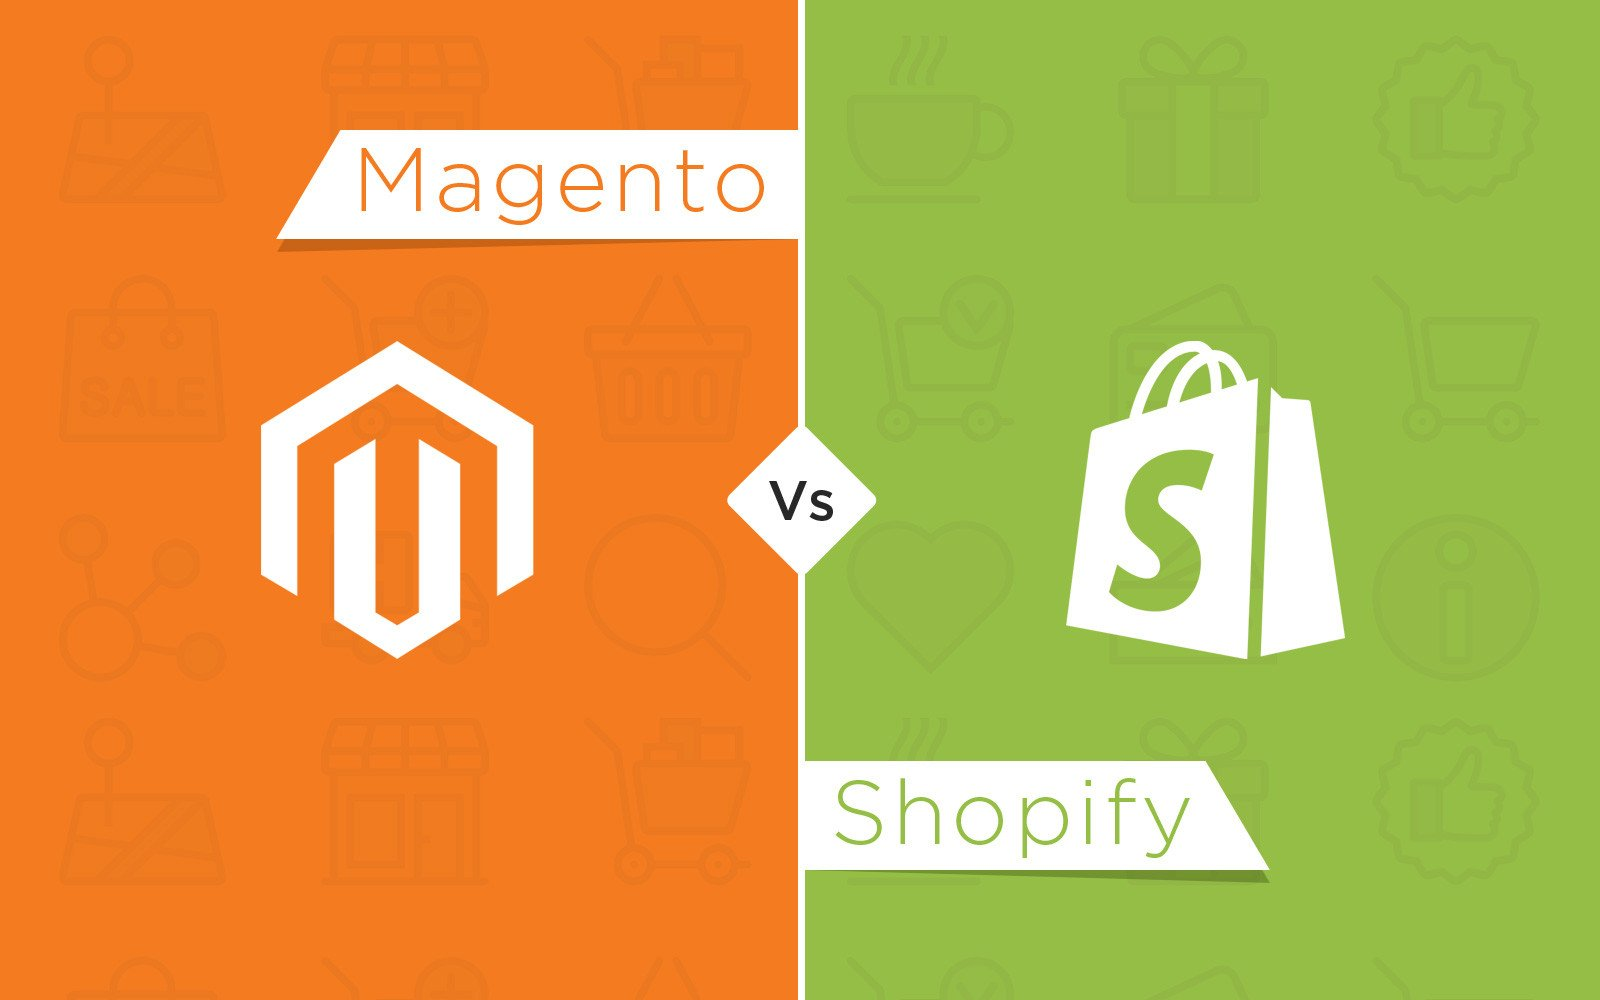 Magento vs Shopify: Which should you choose?